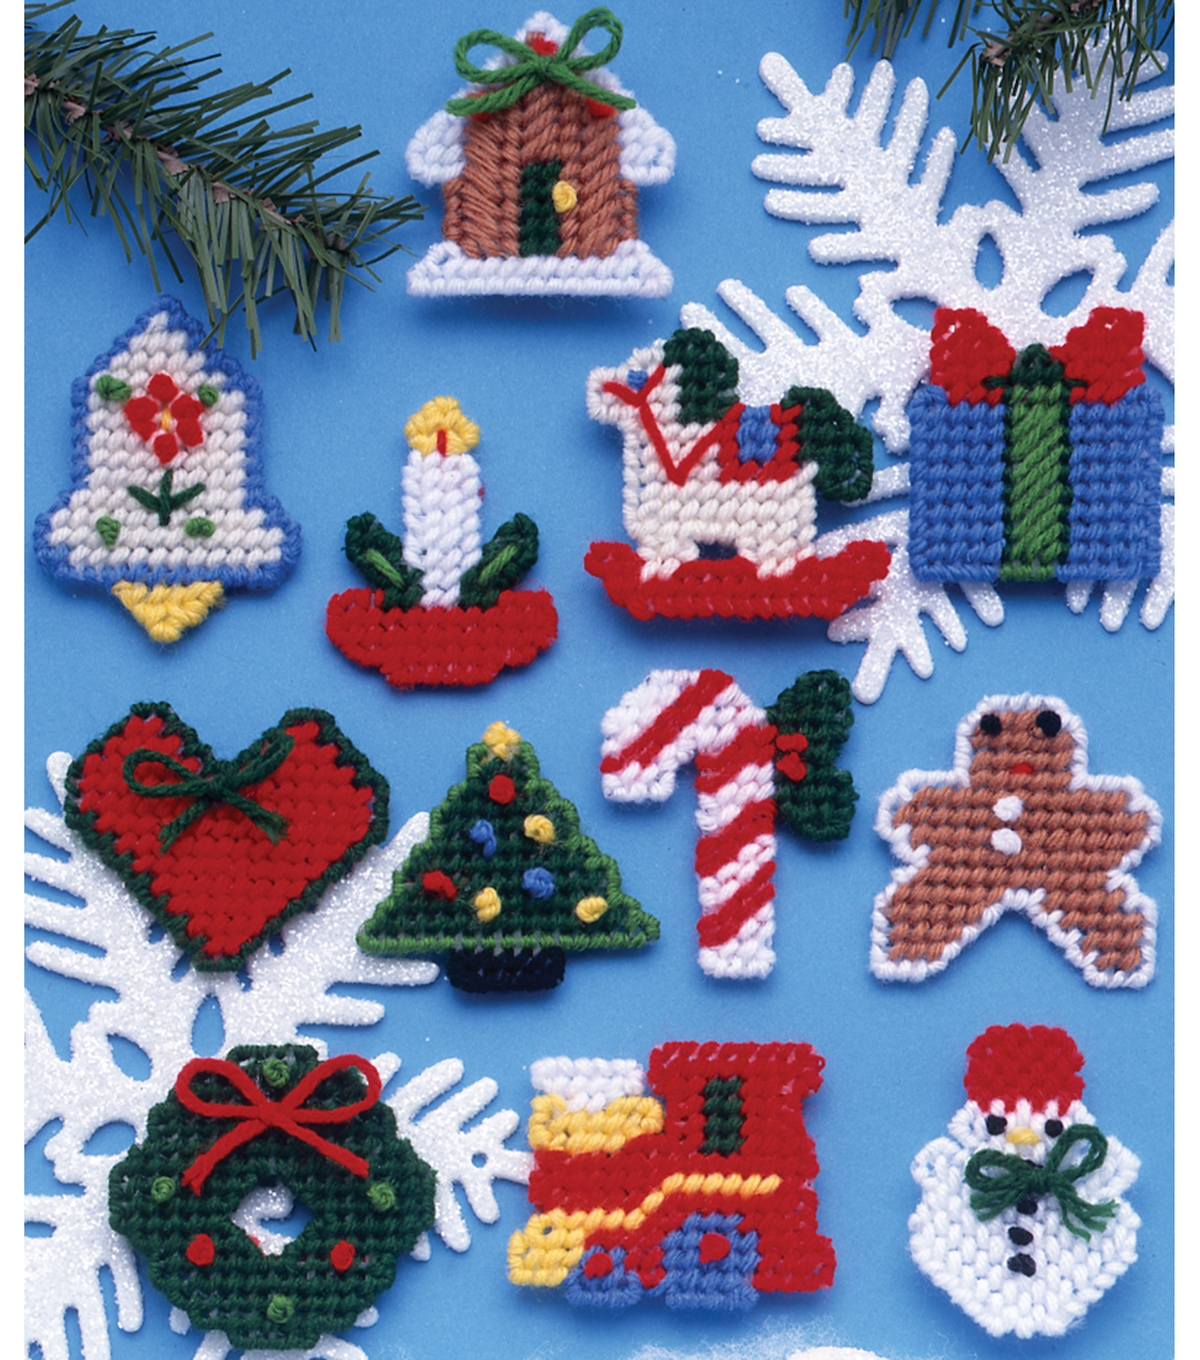 Country Christmas Ornaments Plastic Canvas Kit 2 7 Count Set Of 12